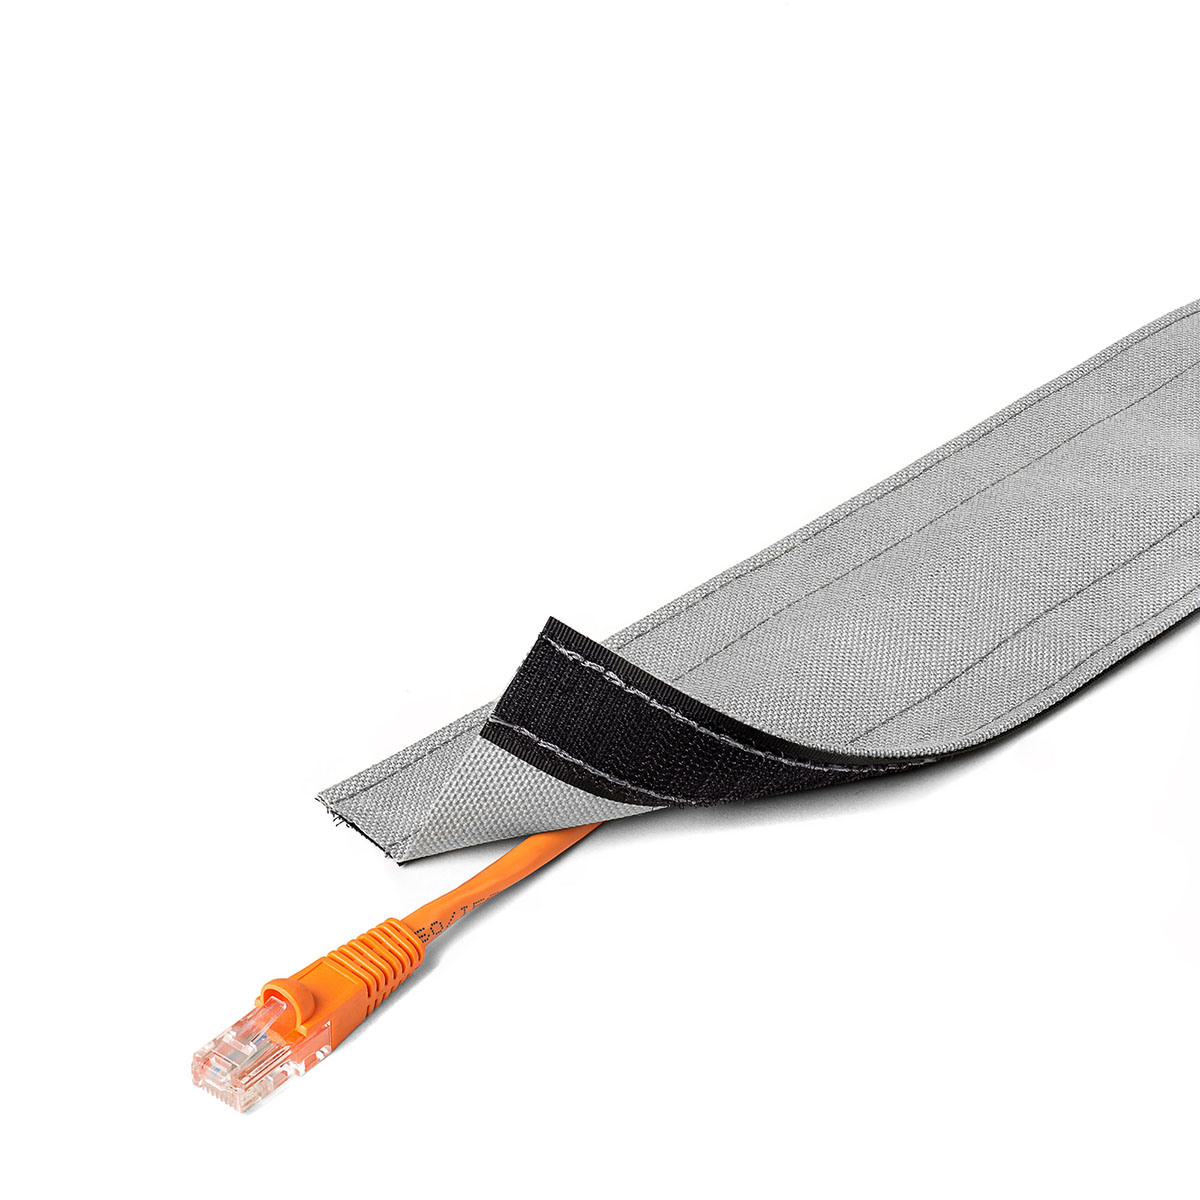 China Eko 140mm Floor Cable Wrap Sleeve Wire Cord Hider Cover